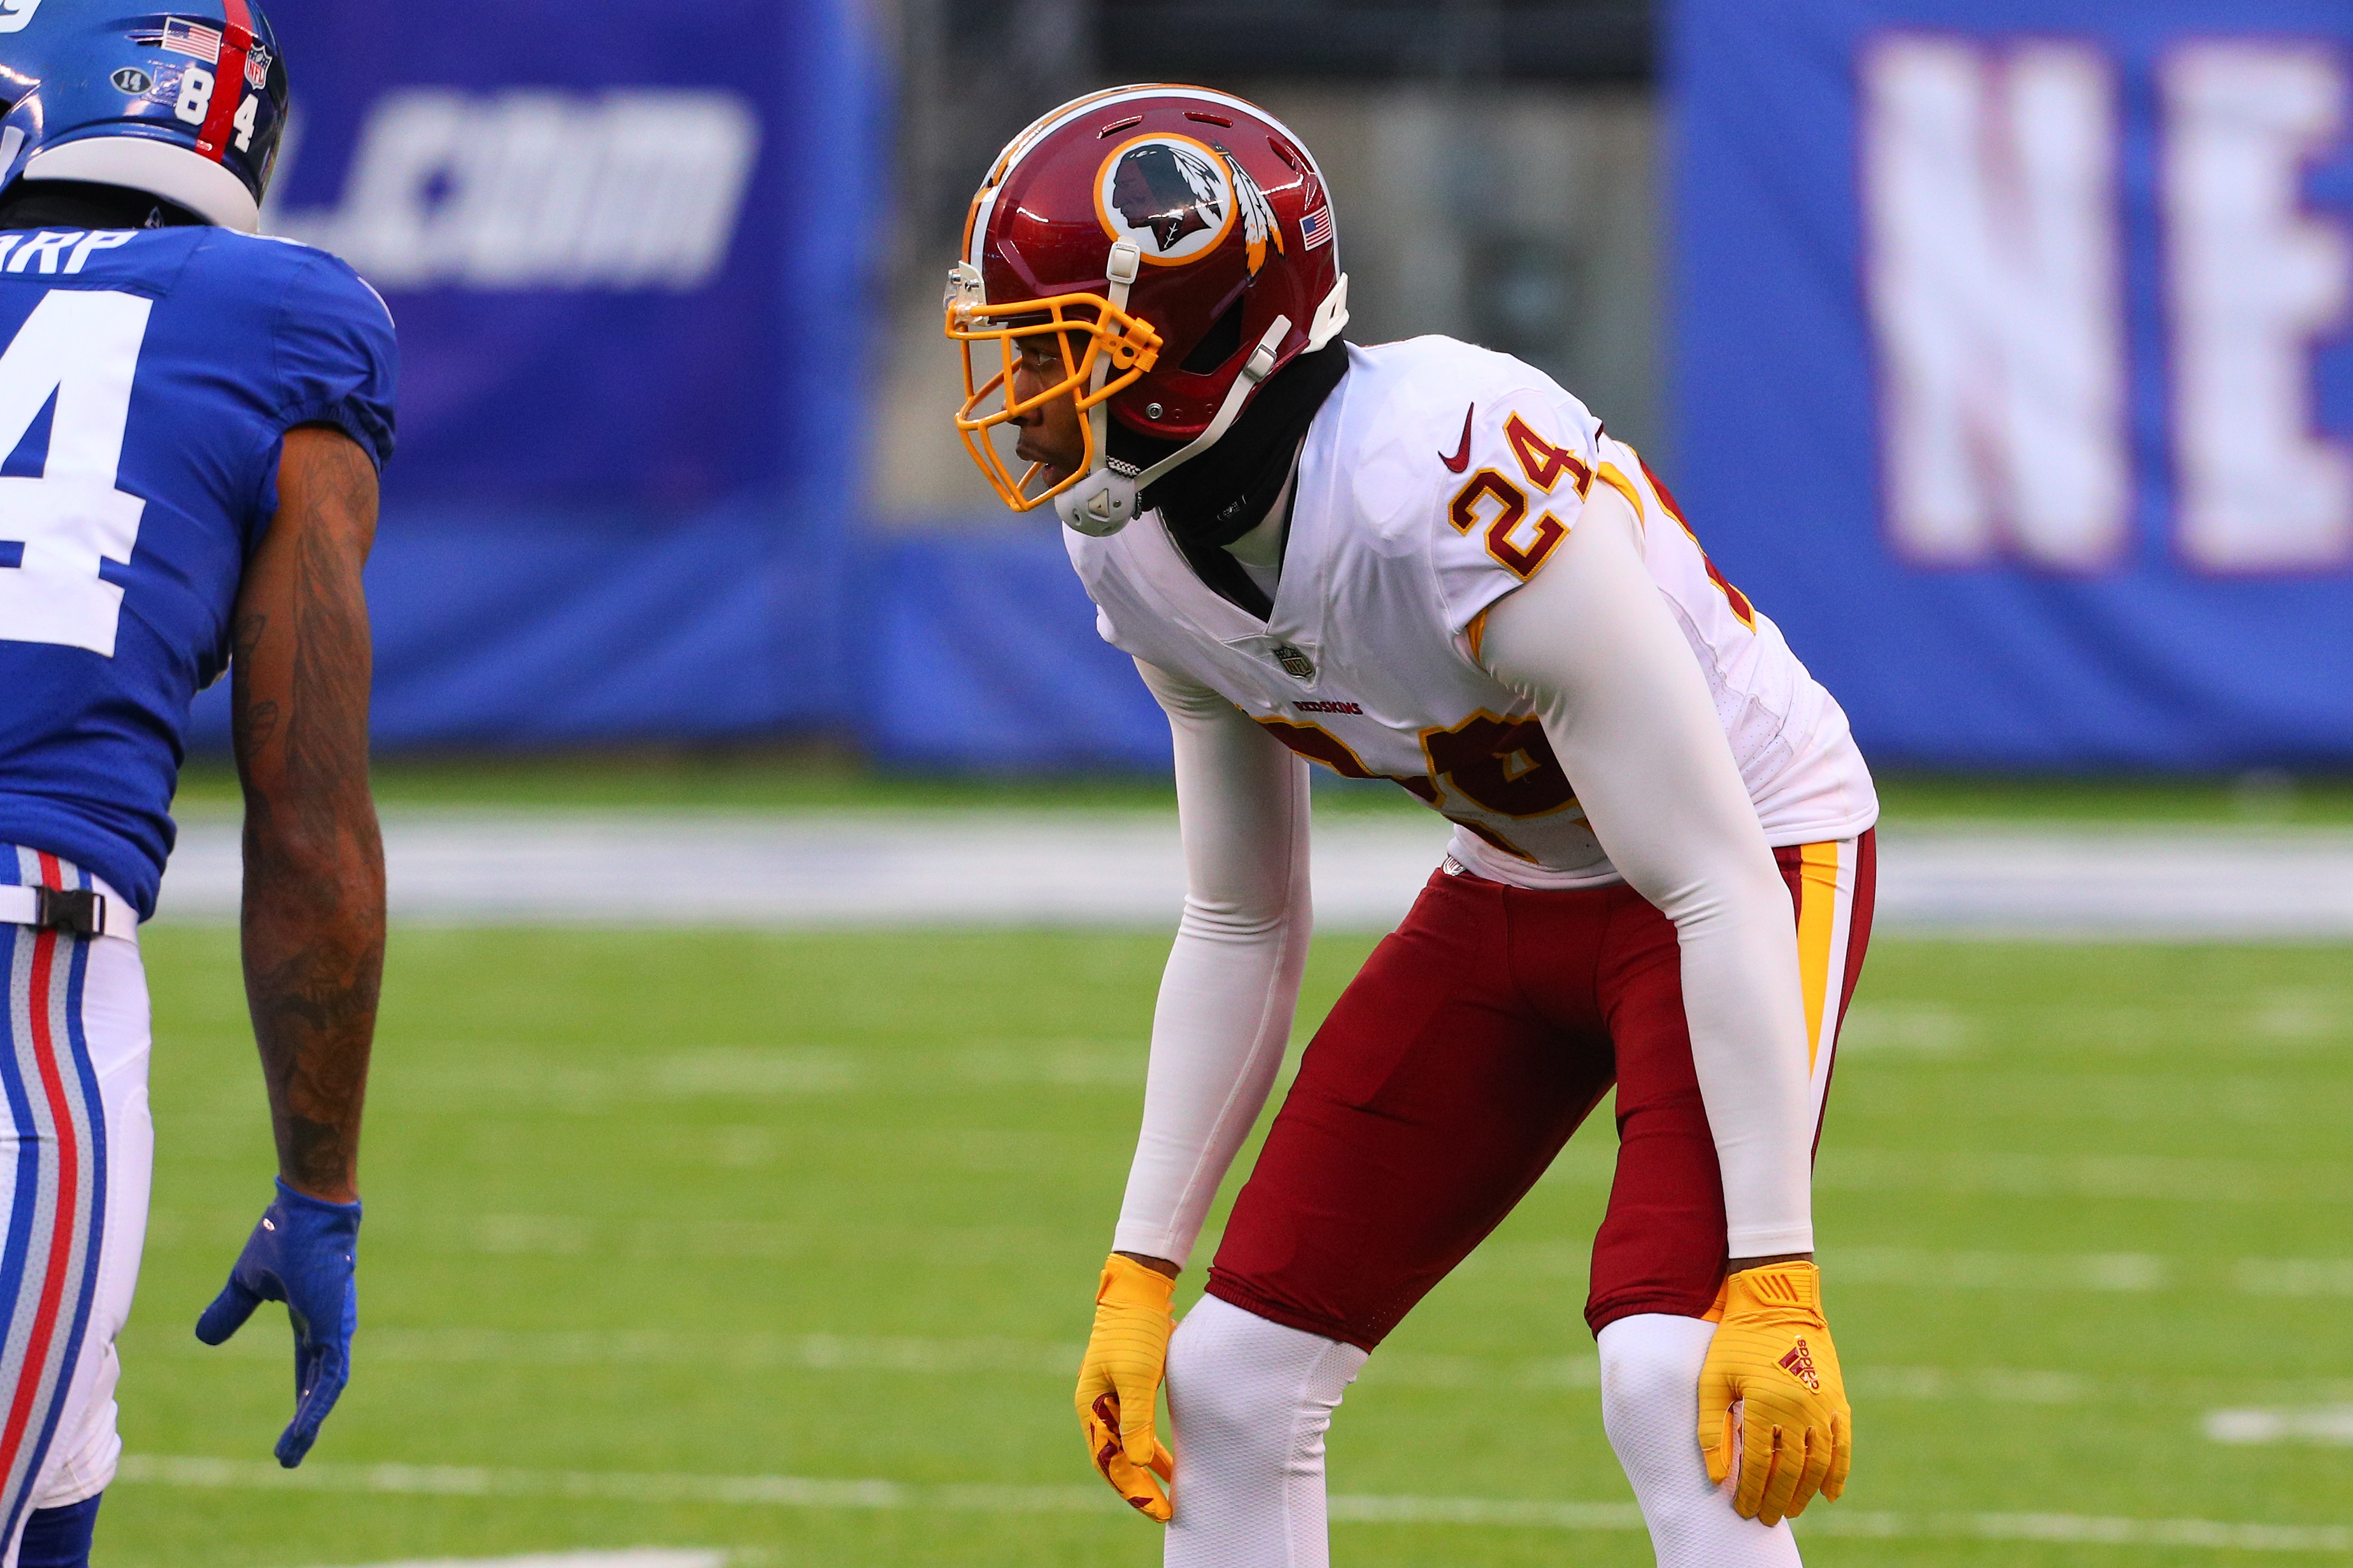 NFL: DEC 31 Redskins at Giants